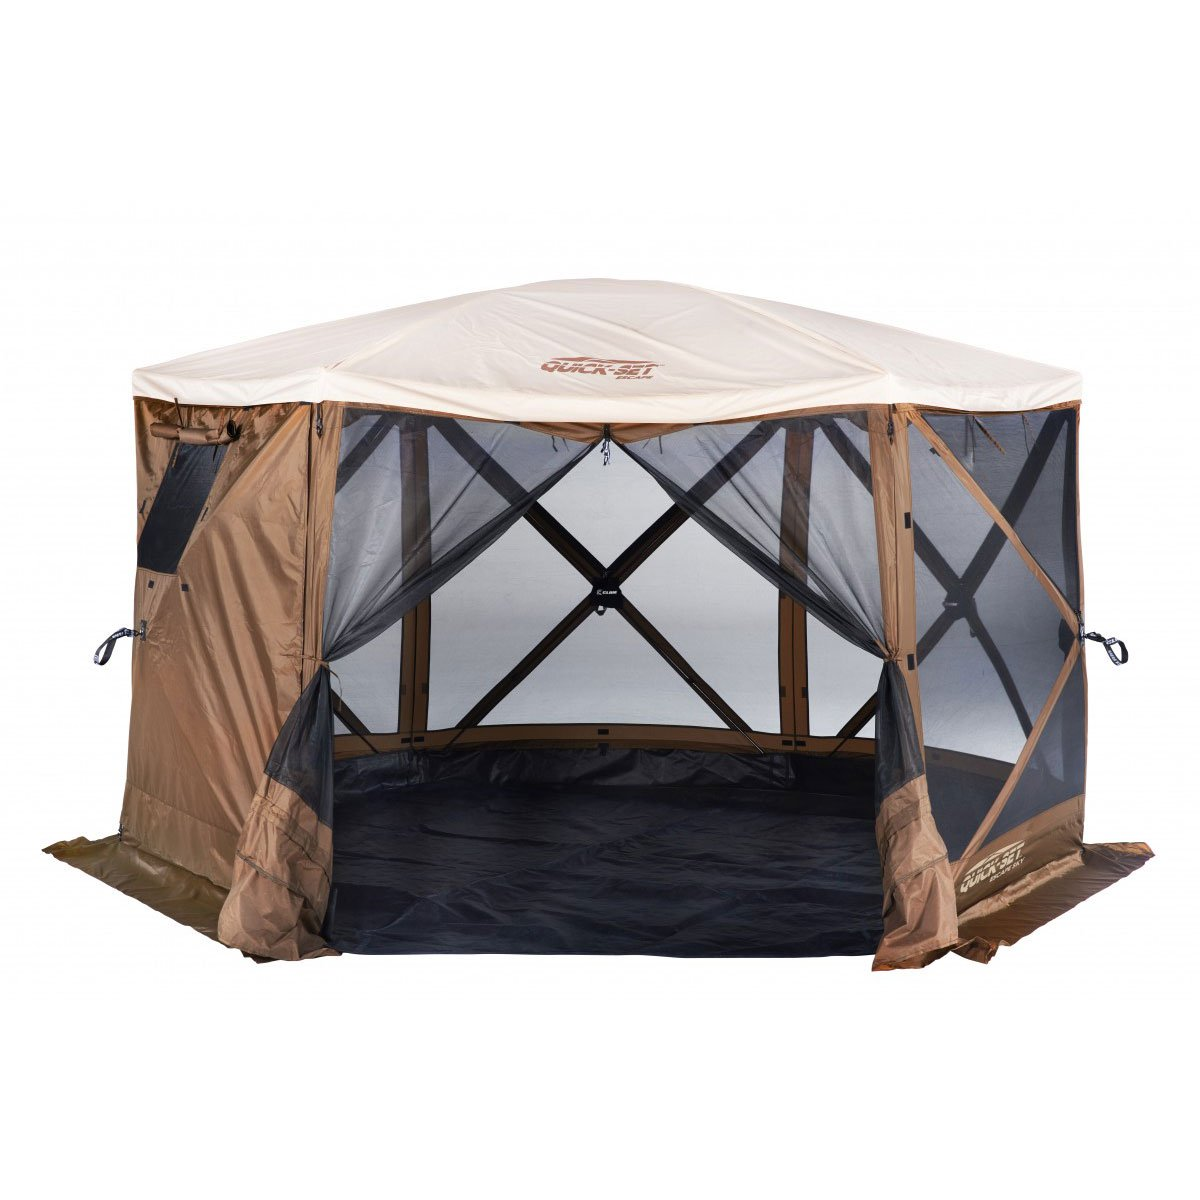 Clam Quick Set Escape Sky Camper Portable Gazebo Canopy Shelter w/ Floor, Brown